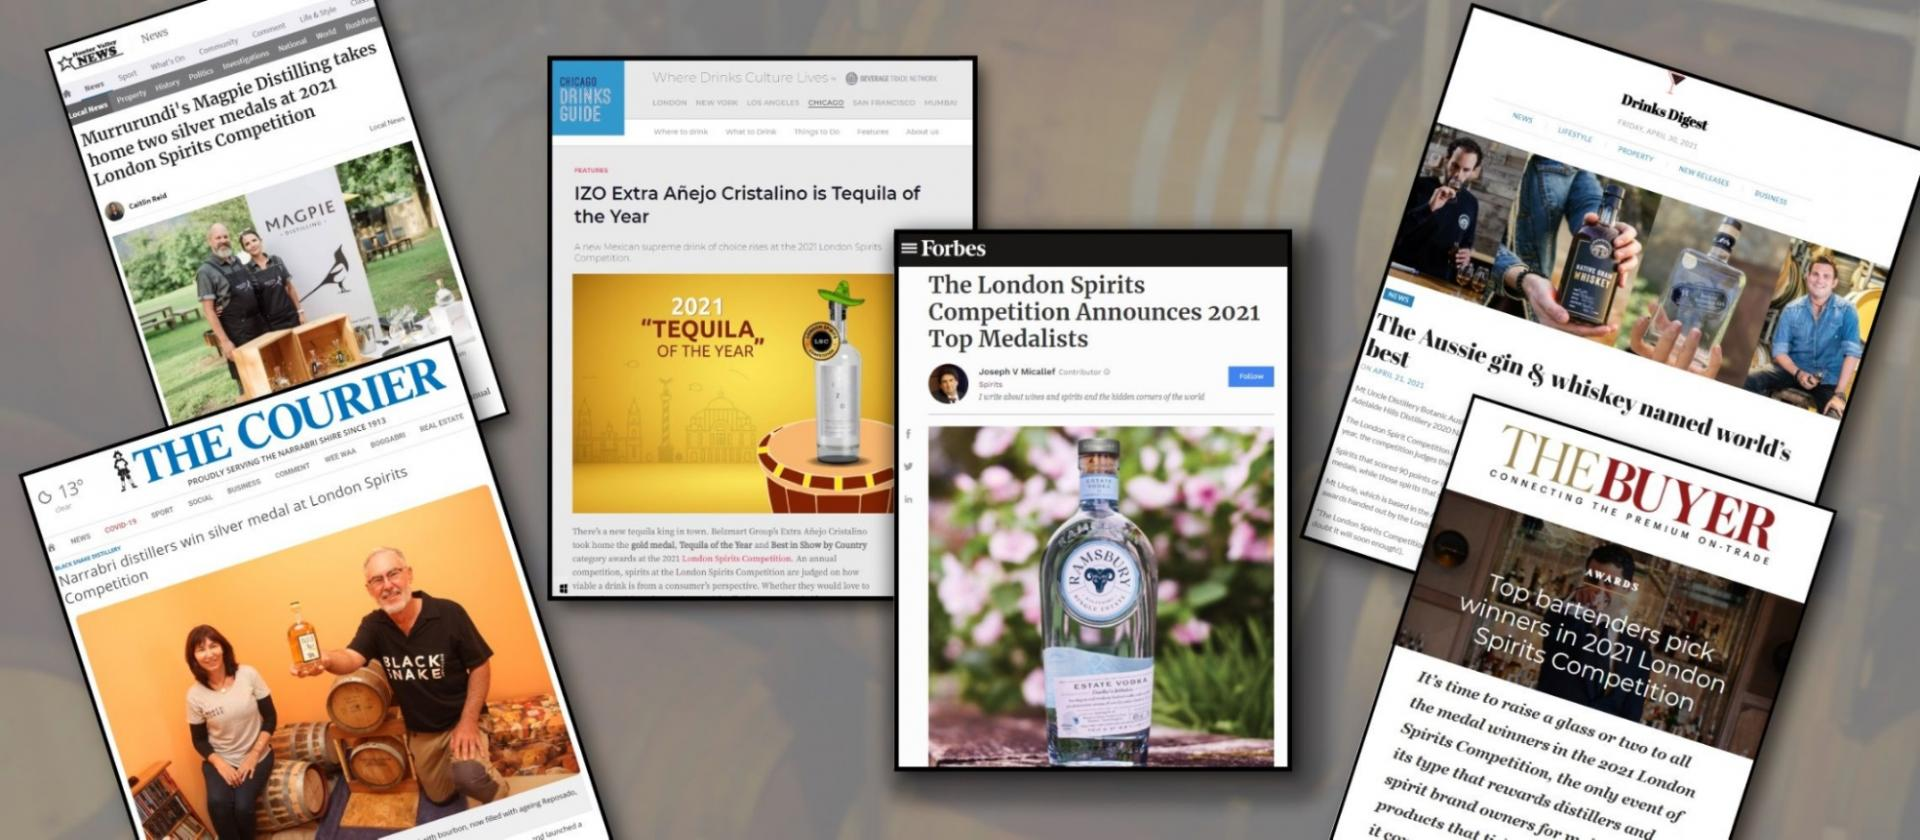 London Spirits Competition 2021 Winners Global Press Coverage